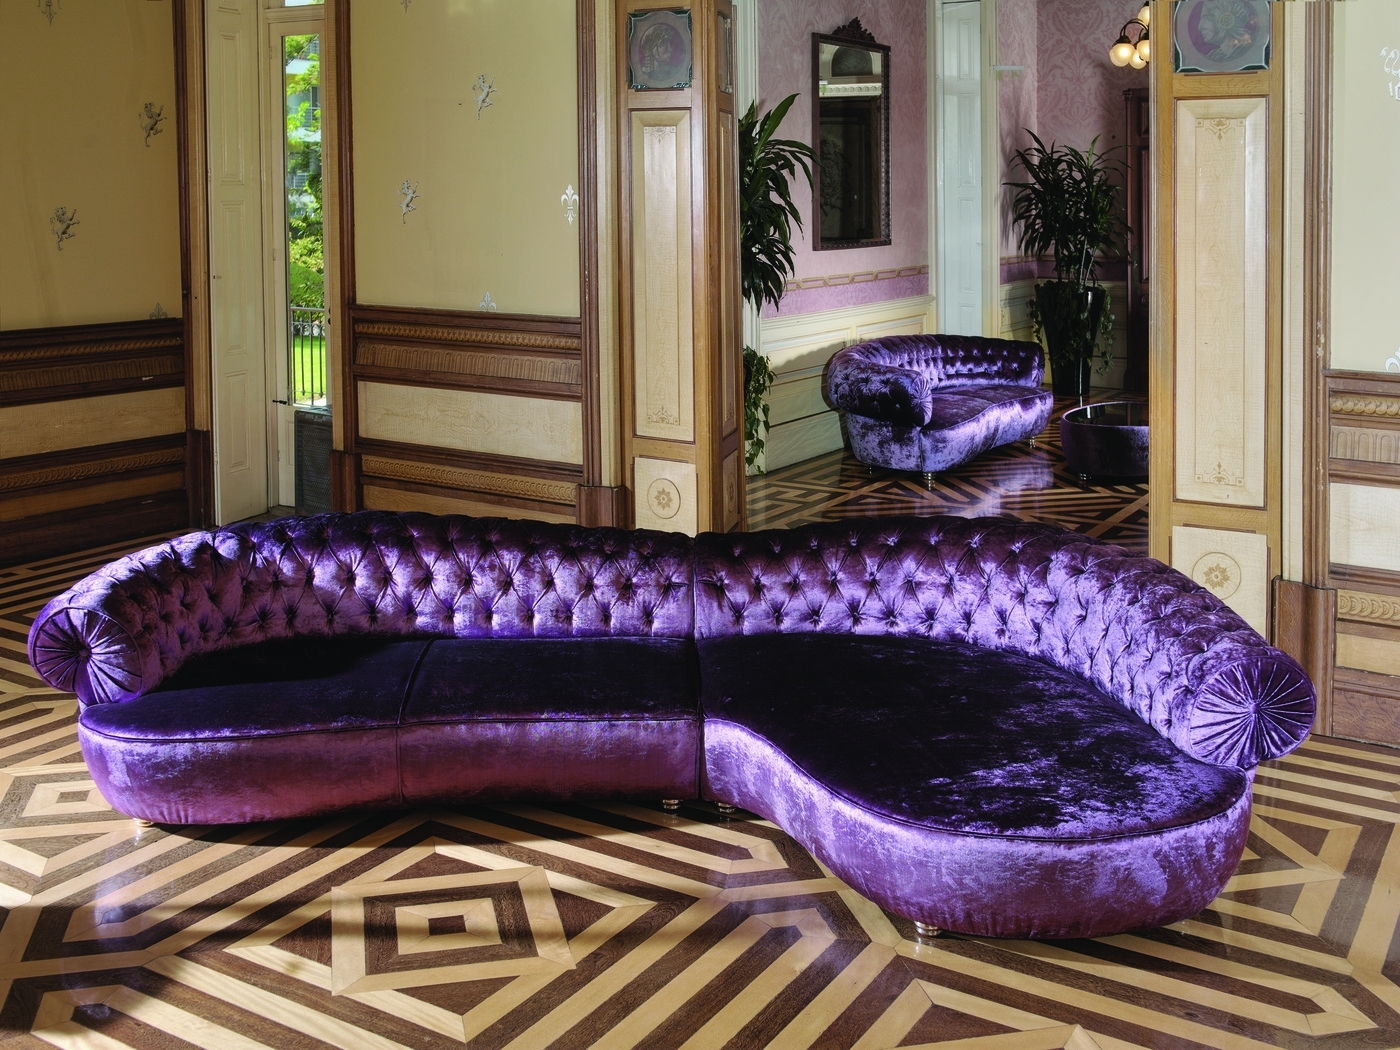 Purple Chaises Throughout Well Liked Elly Chaise Longue Rich Purple Large Sofa. Just Beautiful (View 11 of 15)